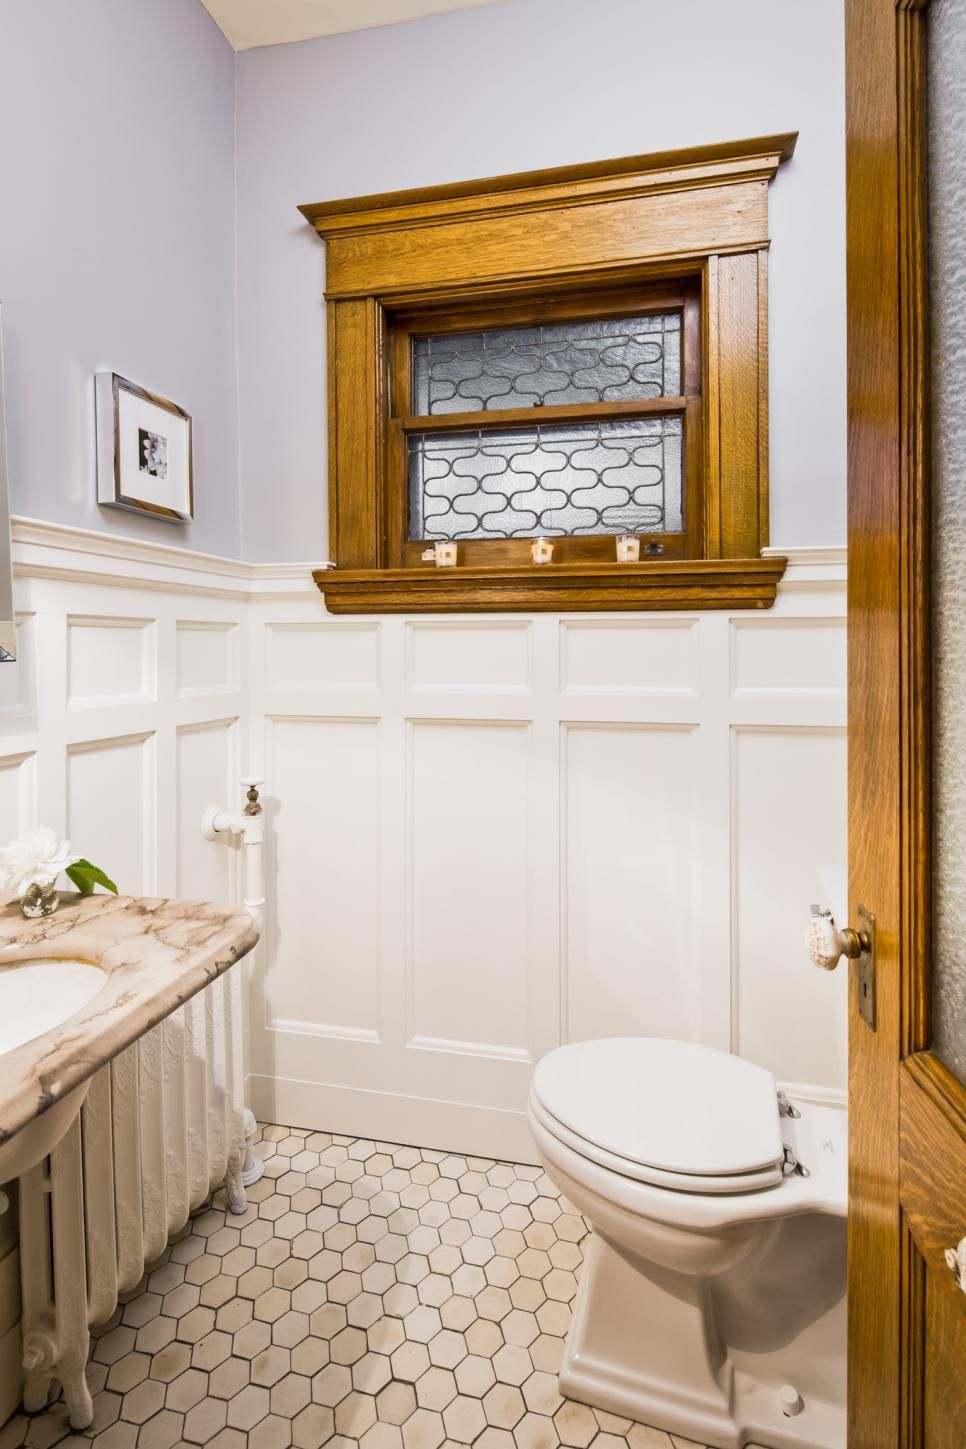 Merveilleux Before And After: 20 Incredible Small Bathroom Makeovers. Nicole  CurtisBathroom ...